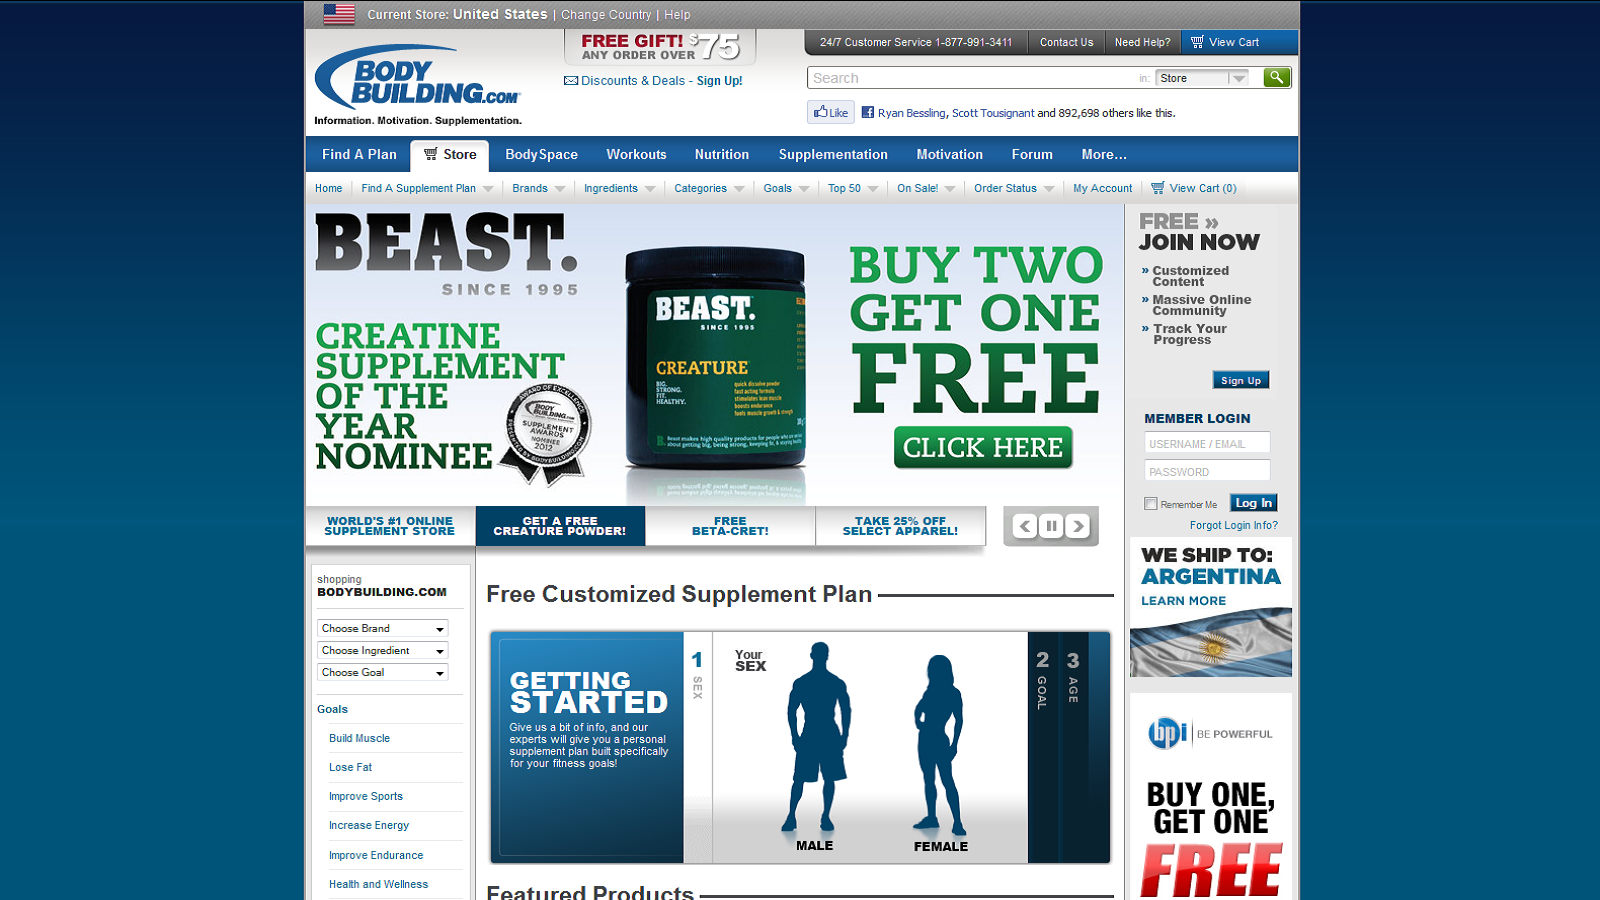 BodyBuilding.com Coupons & Promo Codes